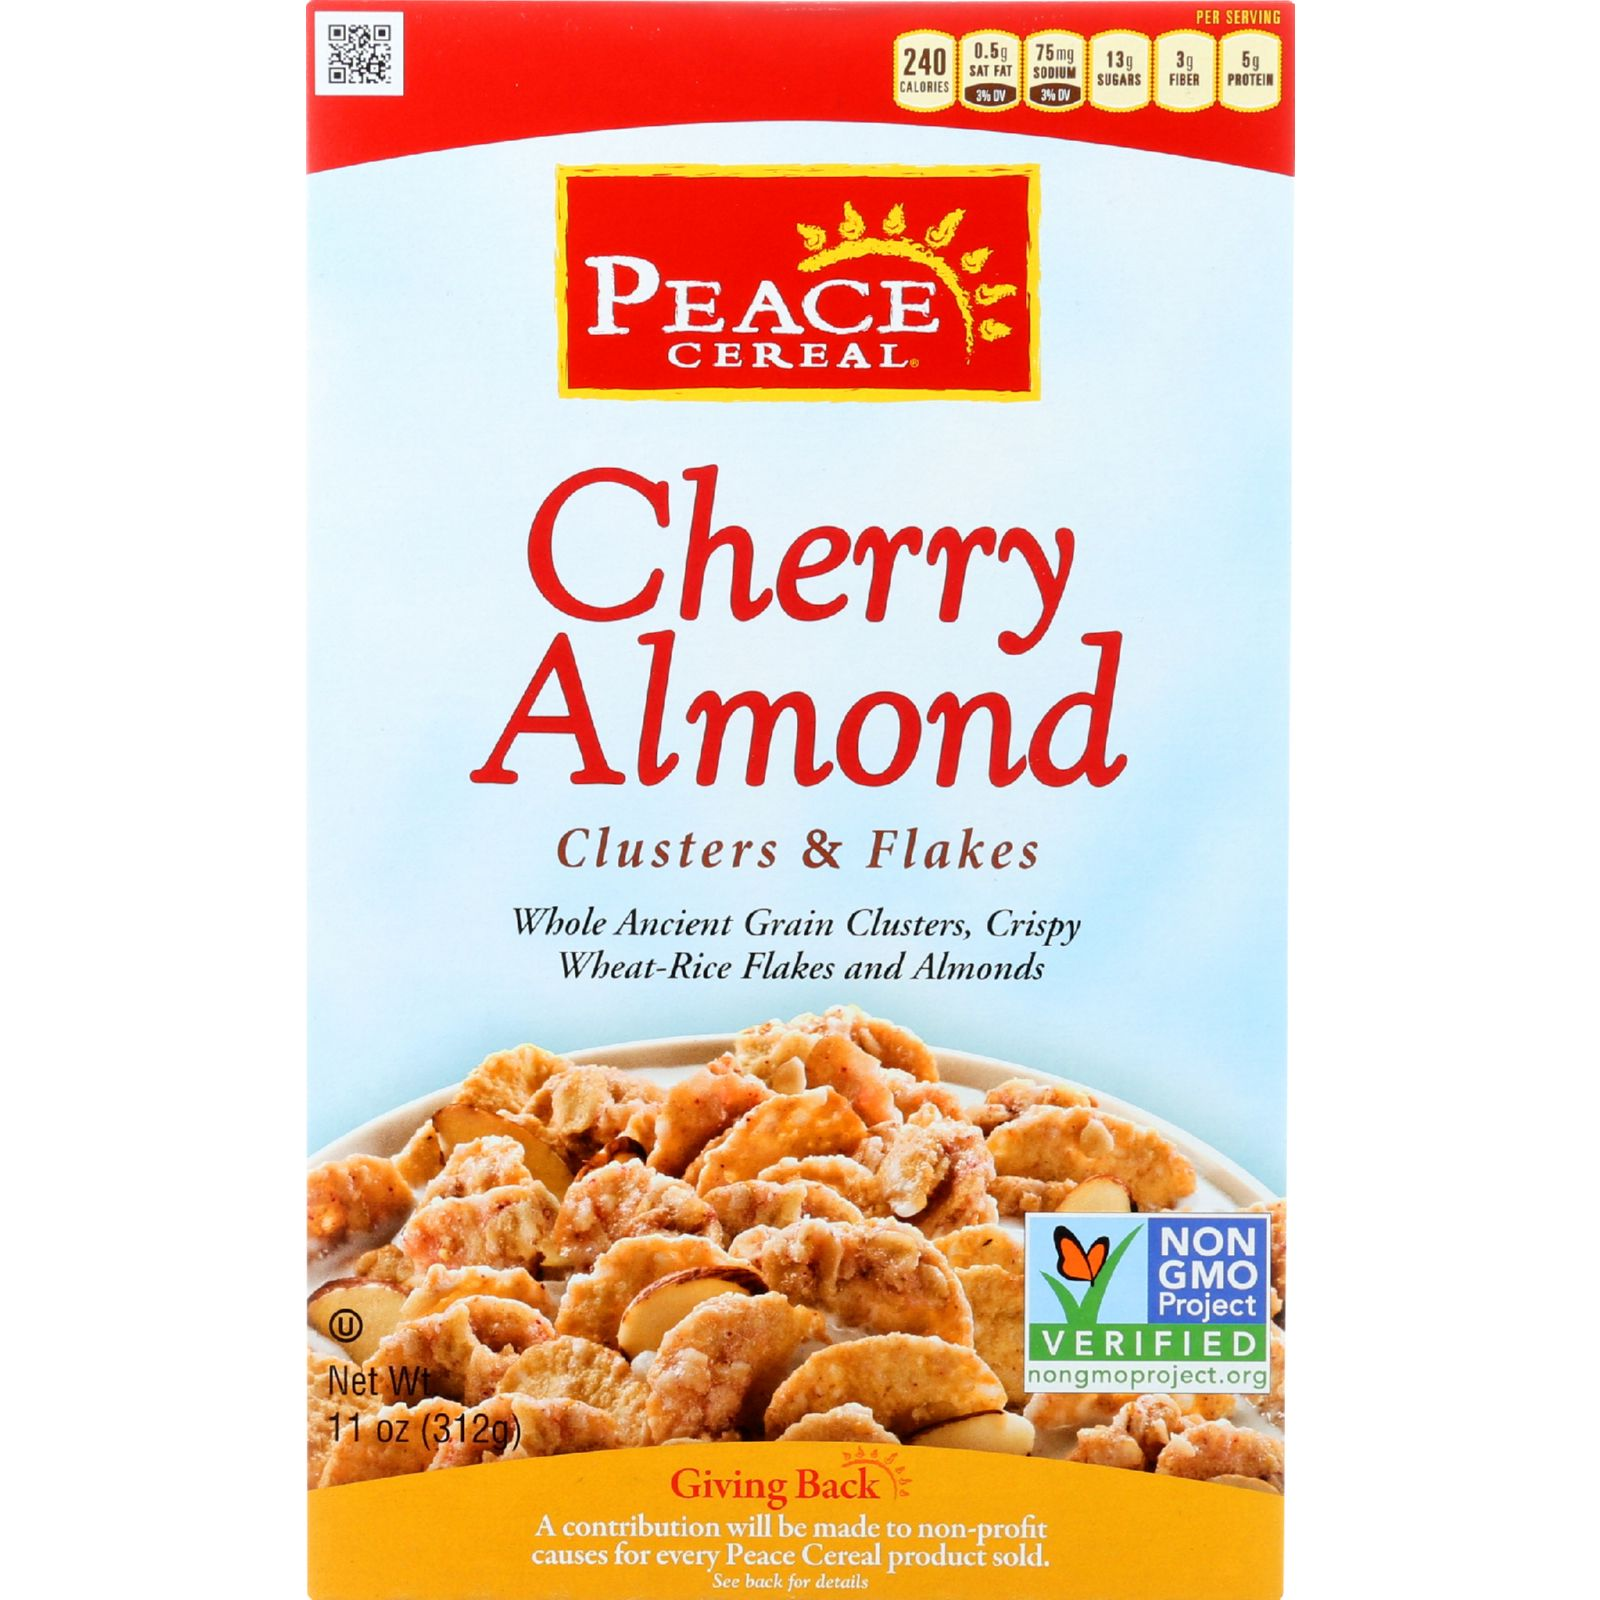 Peace Cereals Cereal Cherry Almond 11 Oz. (Pack of 6)